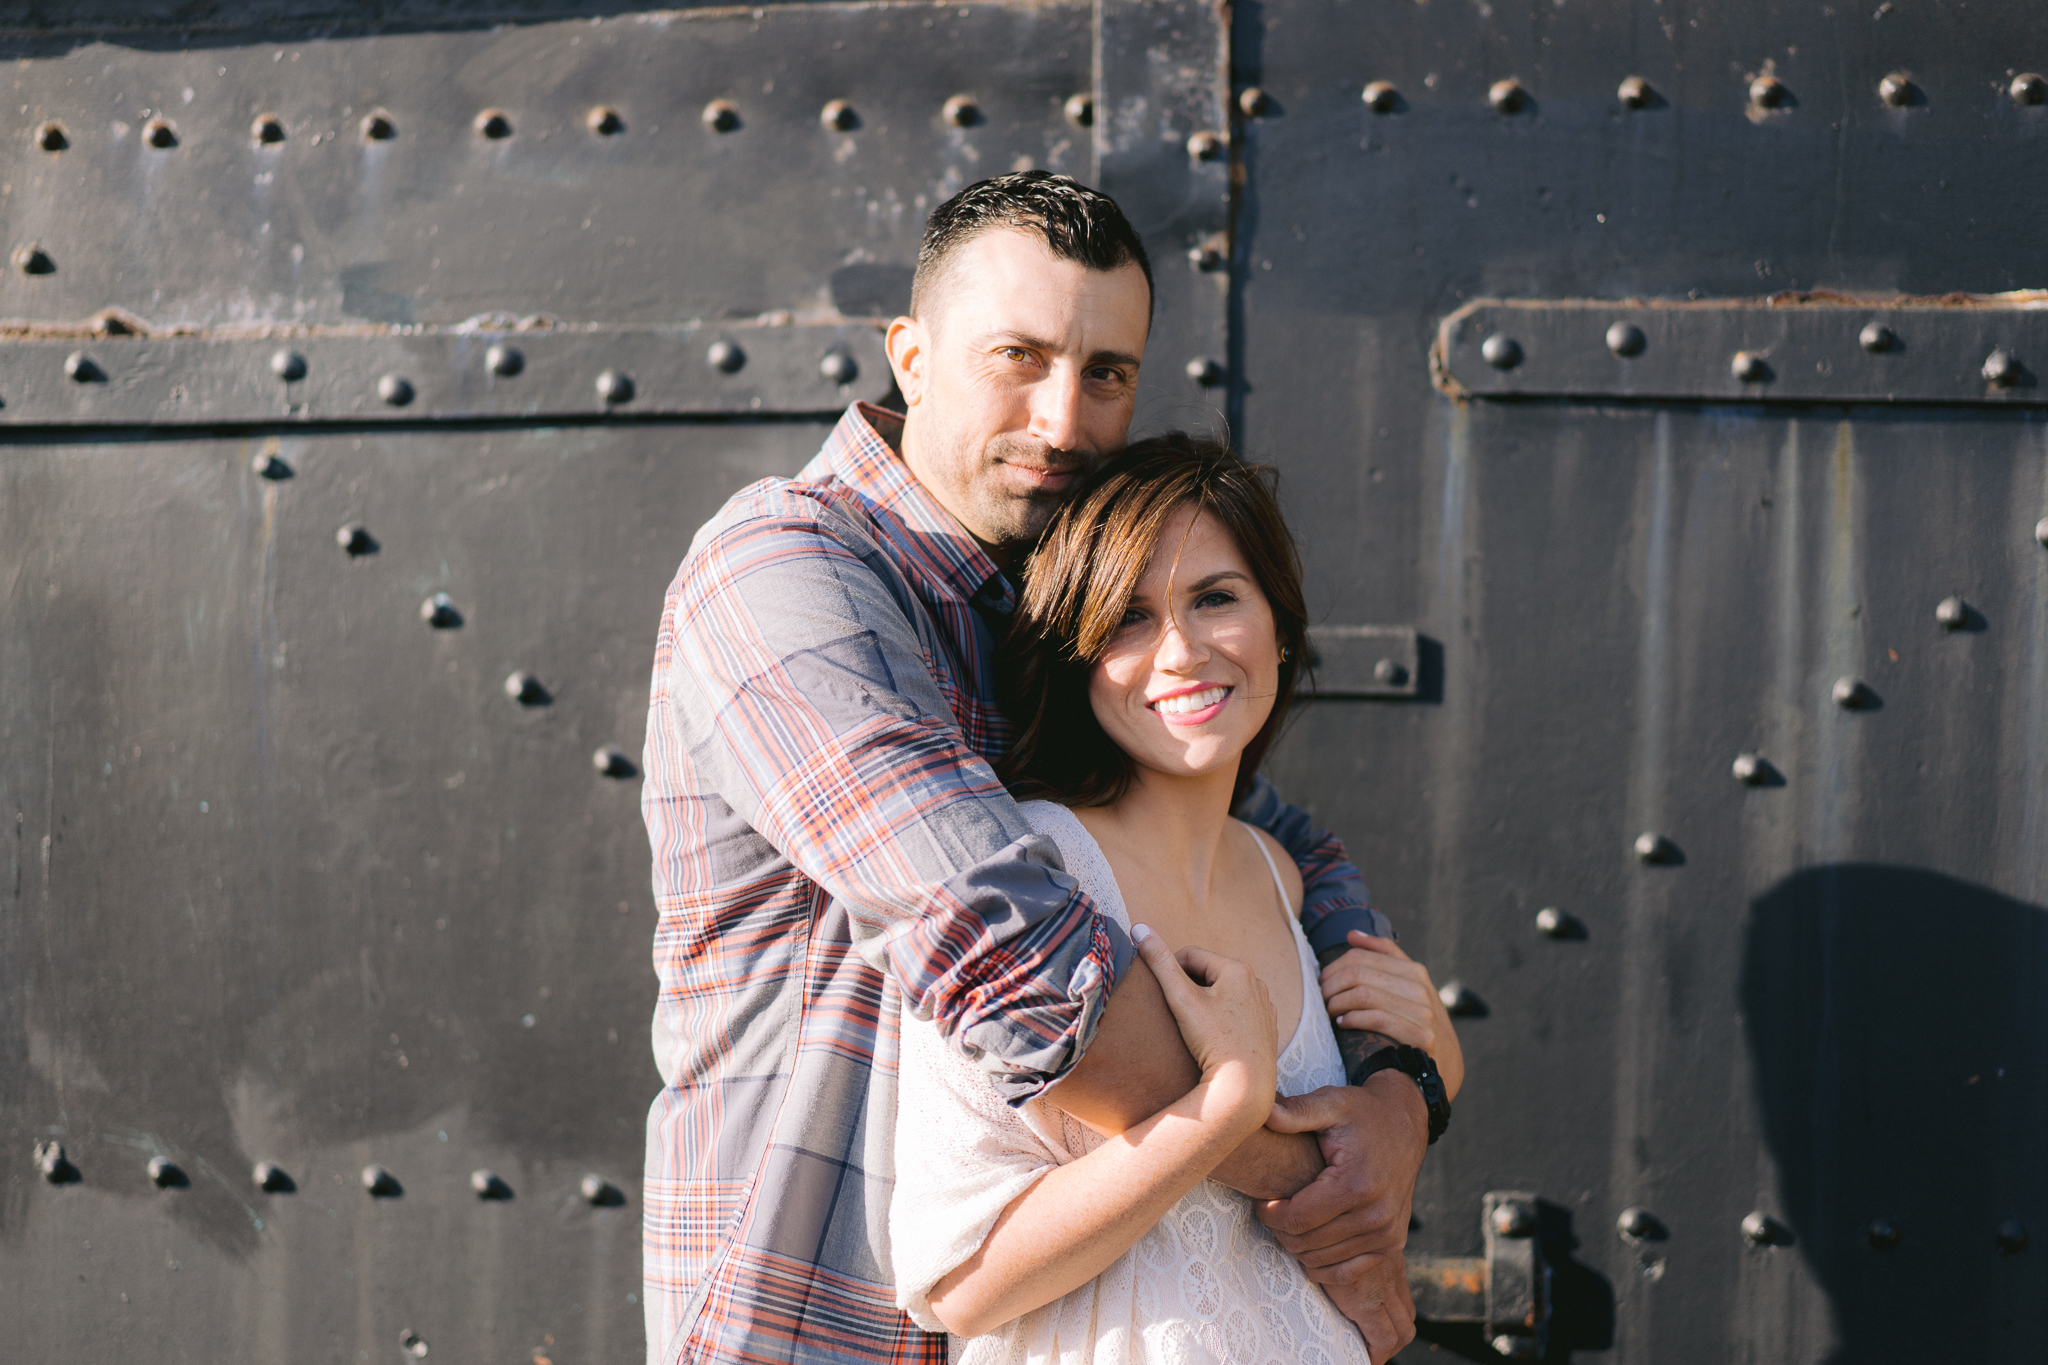 Romantic shot of couple with woman smiling during Engagement shoot in front of Battery Chamberlin.